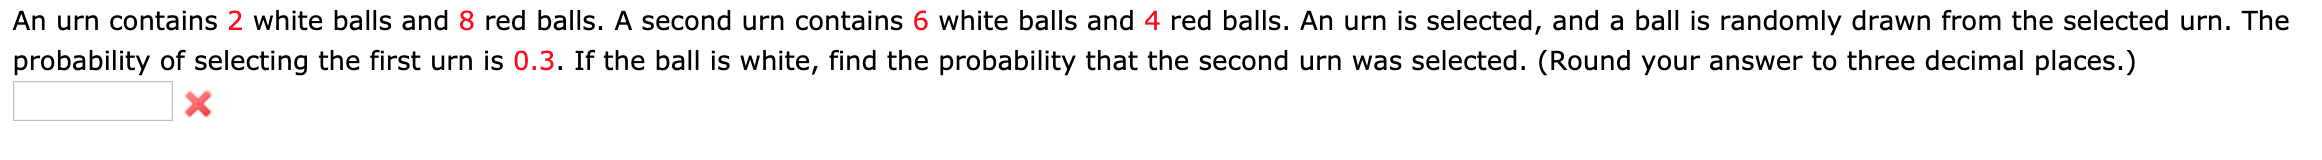 An urn contains 2 white balls and 8 red balls. A second urn contains 6 white balls and 4 red balls. An urn is selected, and a ball is randomly drawn from the selected urn. The probability of selecting the first urn is 0.3. If the ball is white, find the probability that the second urn was selected. (Round your answer to three decimal places.) X